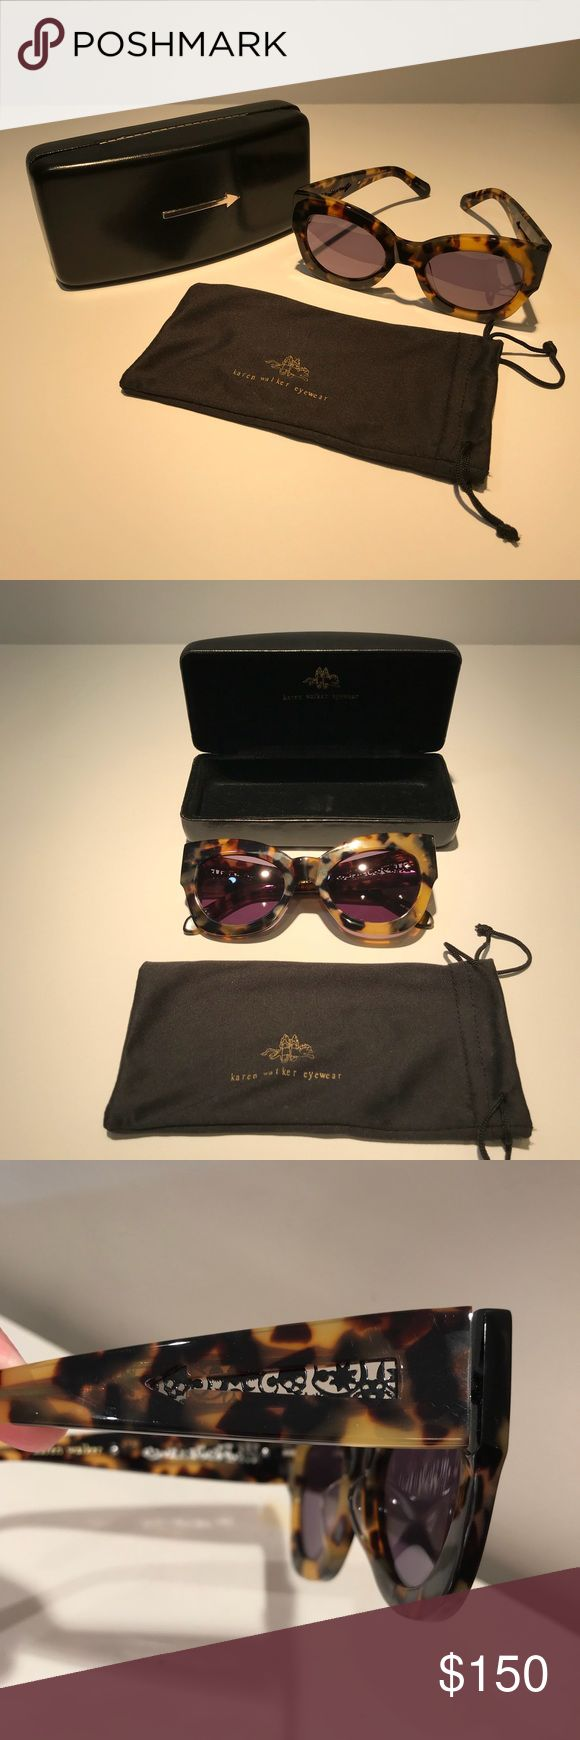 KAREN WALKER Northern Lights Cat Eye Sunglasses A beautiful pair of Karen Walker cat-eye sunglasses in tortoise shell. Features arrow detail at temples with embedded metal signature design for a unique effect. Excellent used condition with original leather case and and soft sided cleaning bag. Smoke free home. (CR) Karen Walker Accessories Sunglasses